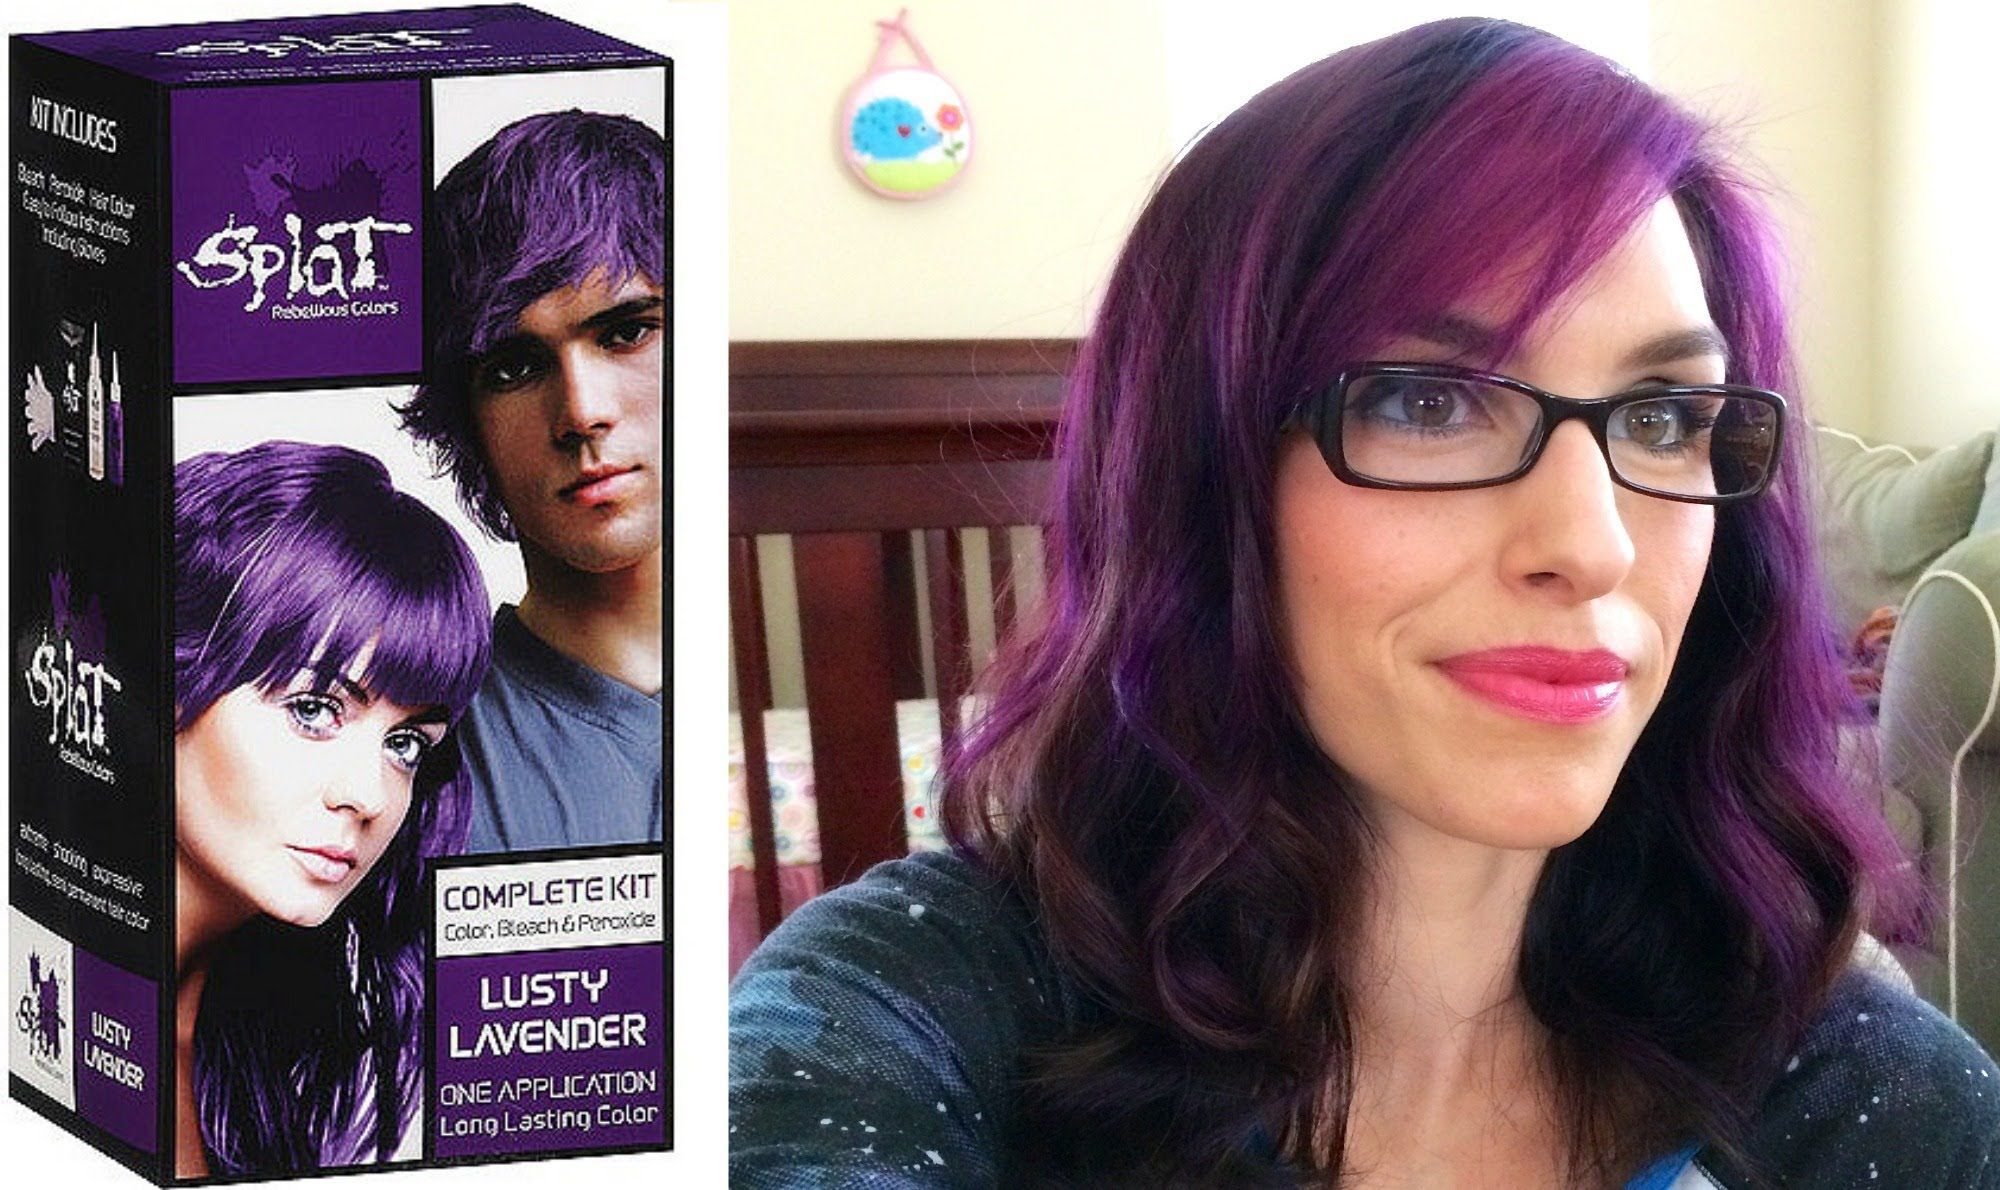 Splat Hair Dye Review And Demo Y Lavendar Defiantly Wouldn T Do It All Over I M Not That Brave Lol